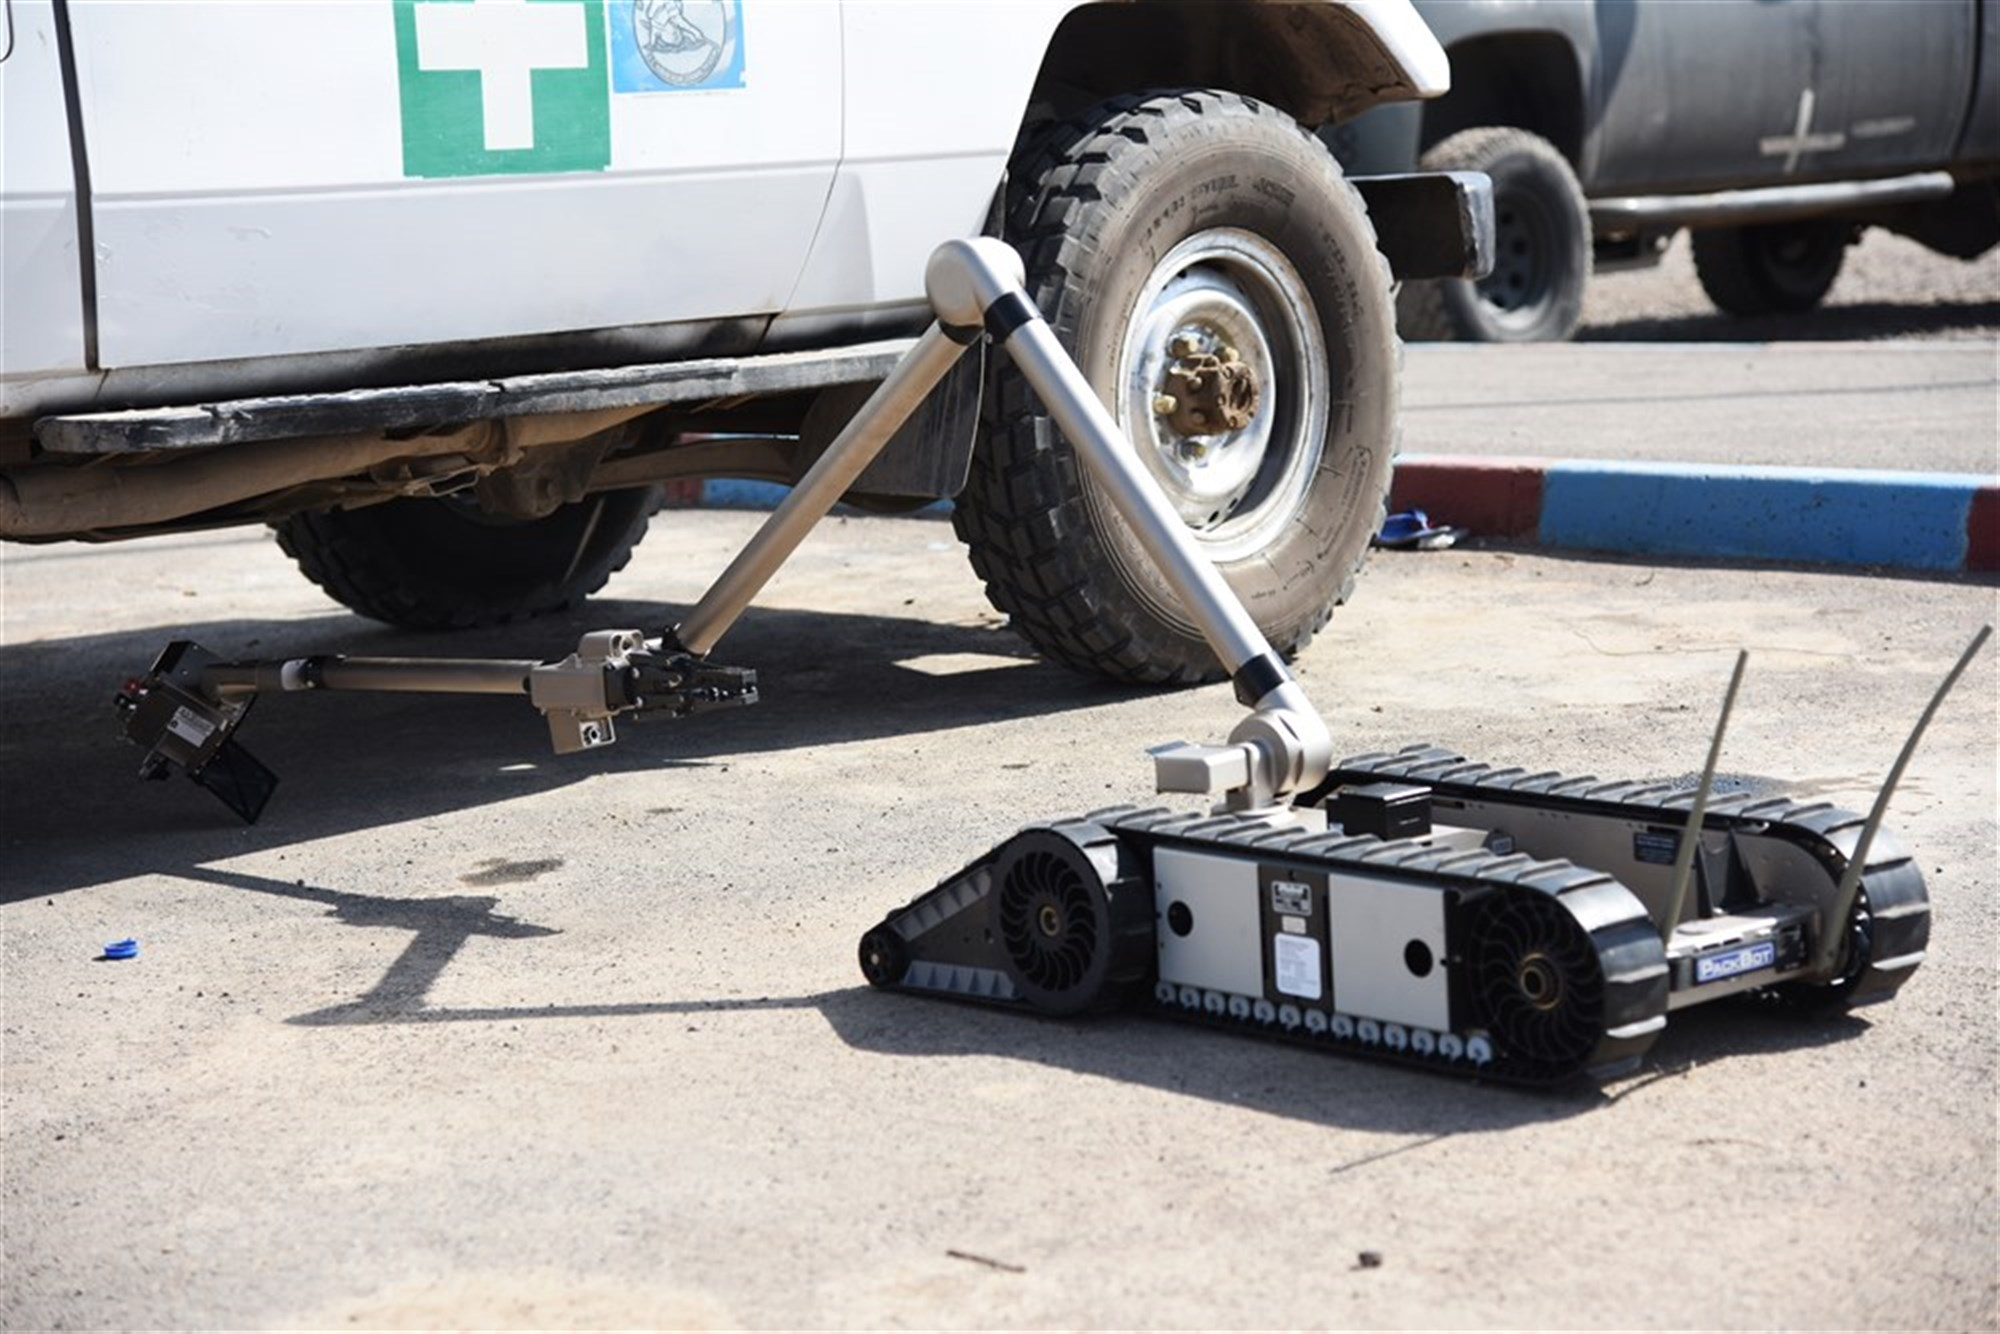 An iRobot 510 Packbot searches for explosive devices under a vehicle during a training course in Djibouti, Oct. 12, 2015. Djibouti Armed Forces (FAD) service members and explosive ordnance disposal technicians assigned at Camp Lemonier learned how to operate the robot